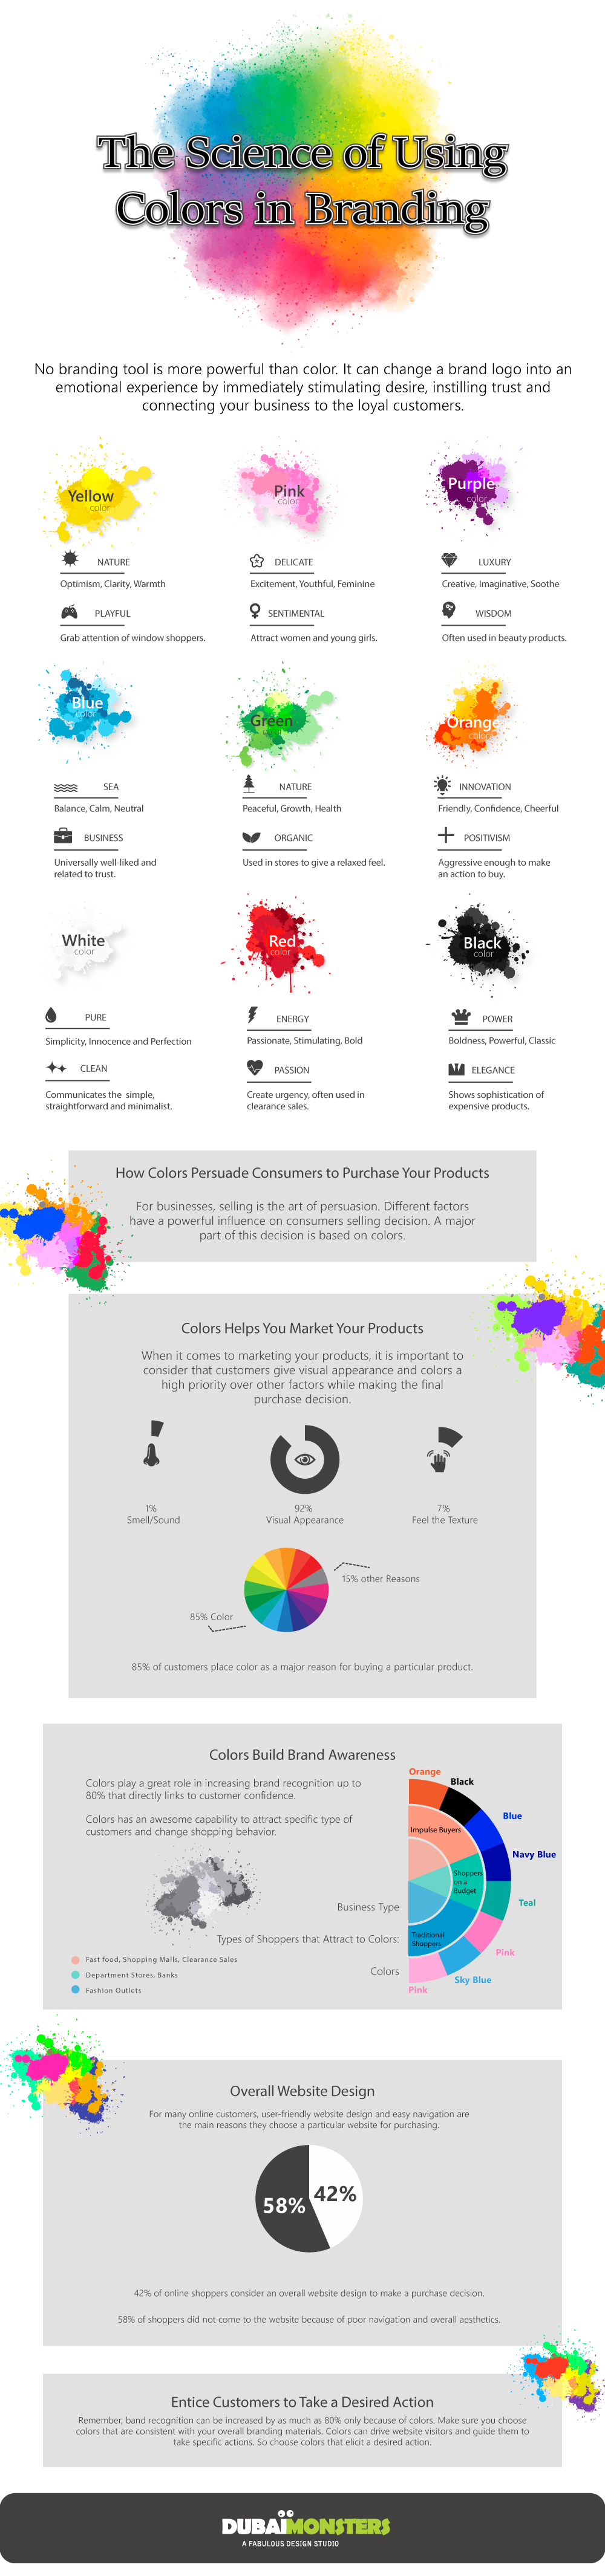 the-science-of-using-colors-in-branding